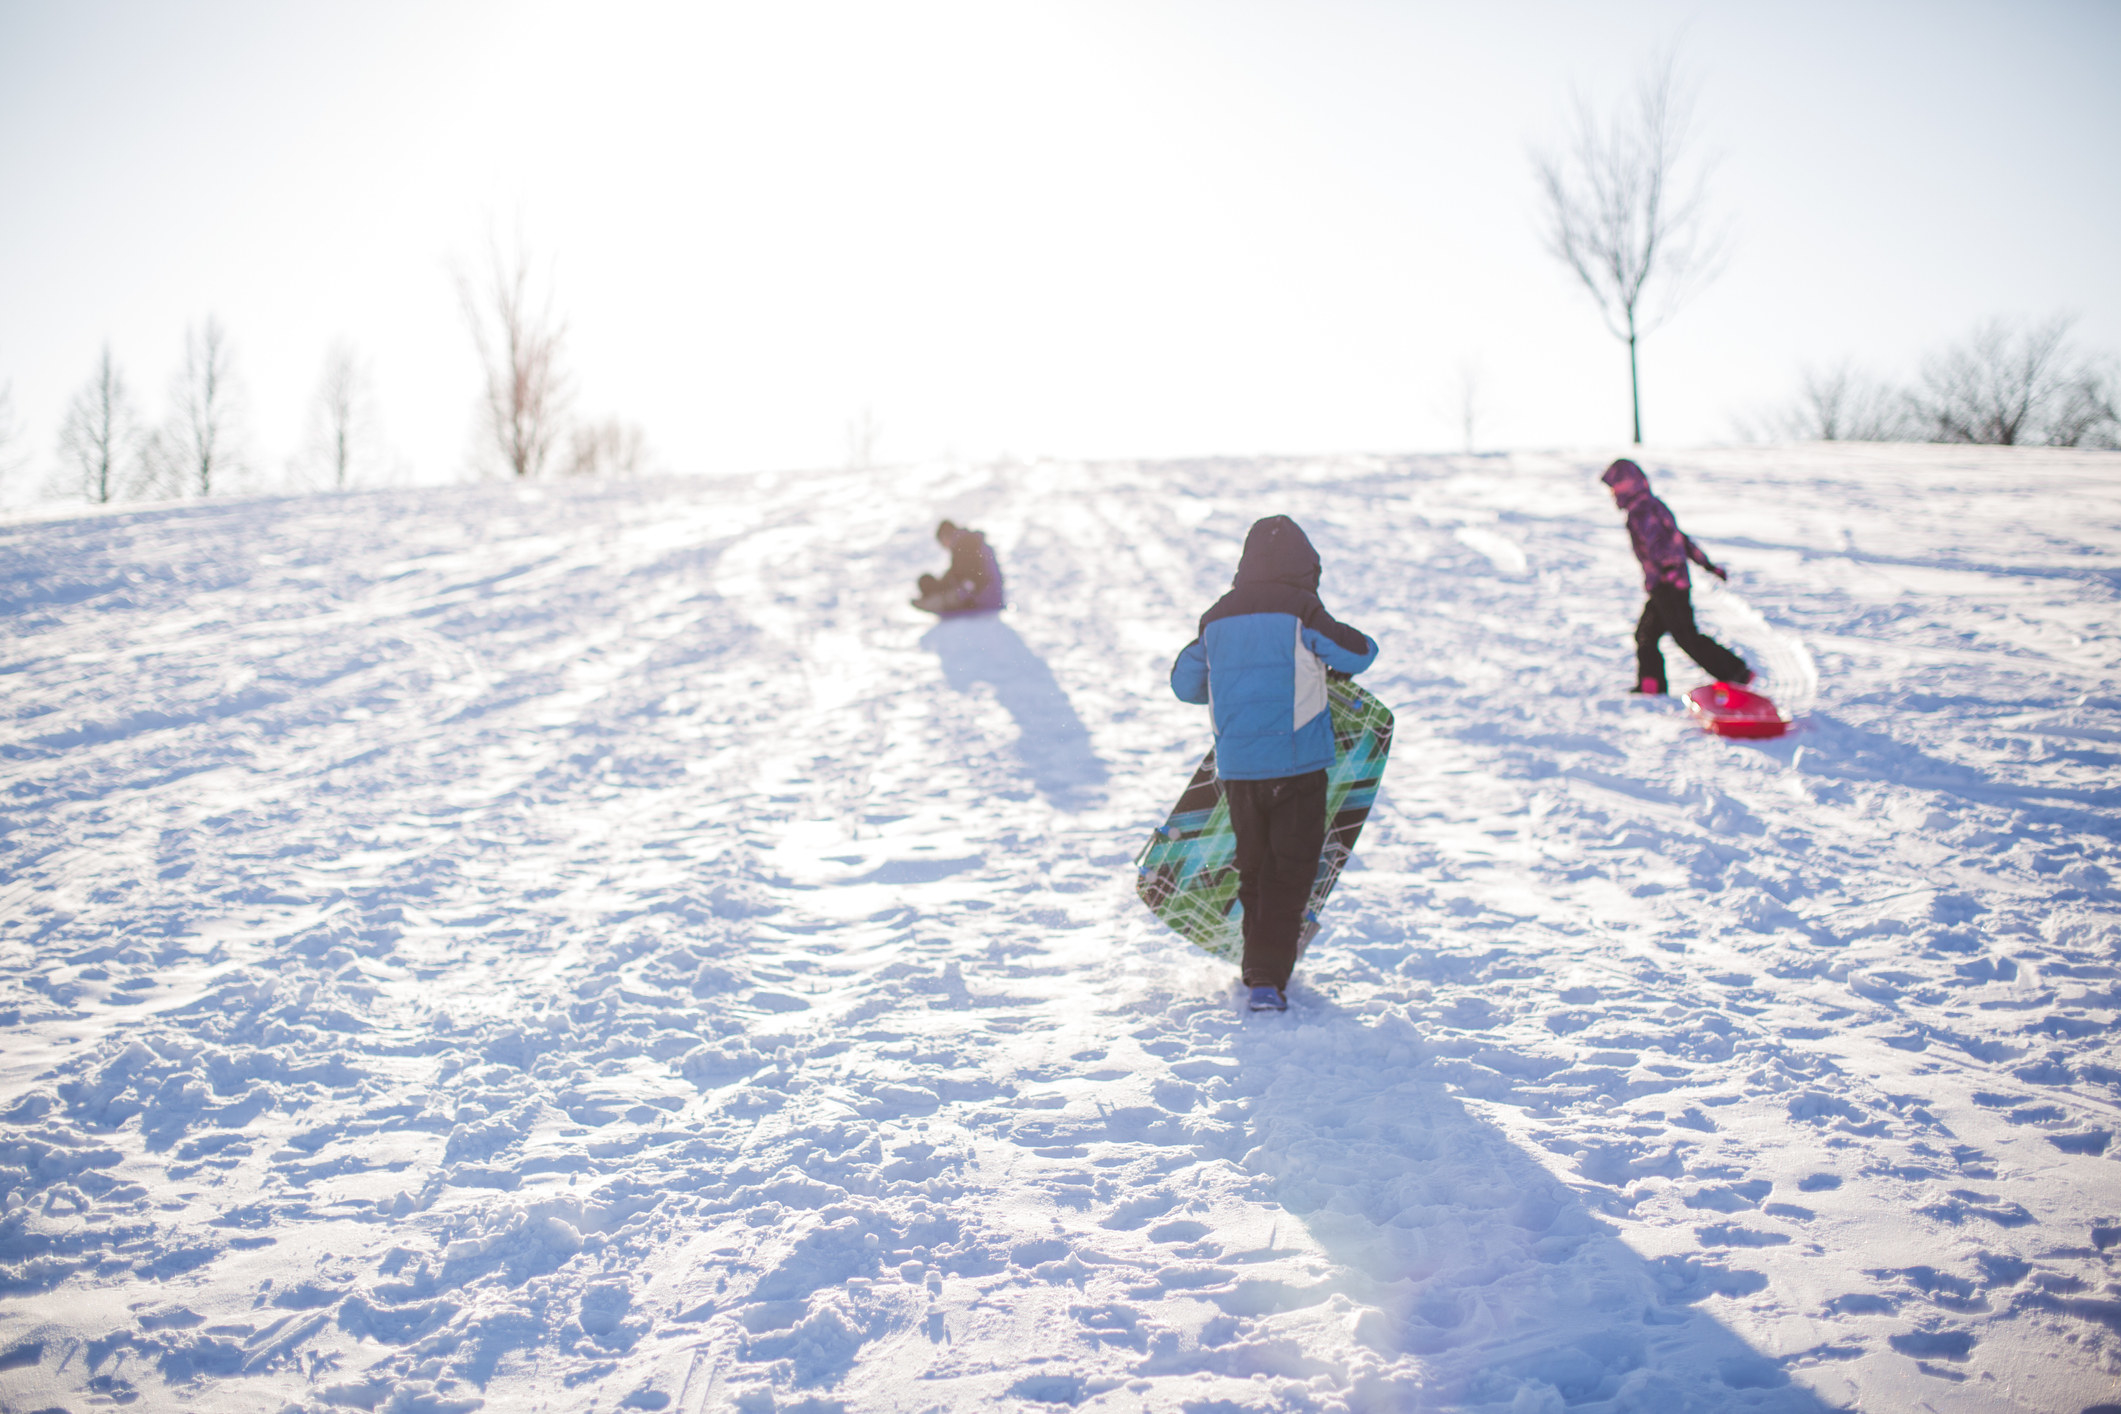 Three kids playing in snow.